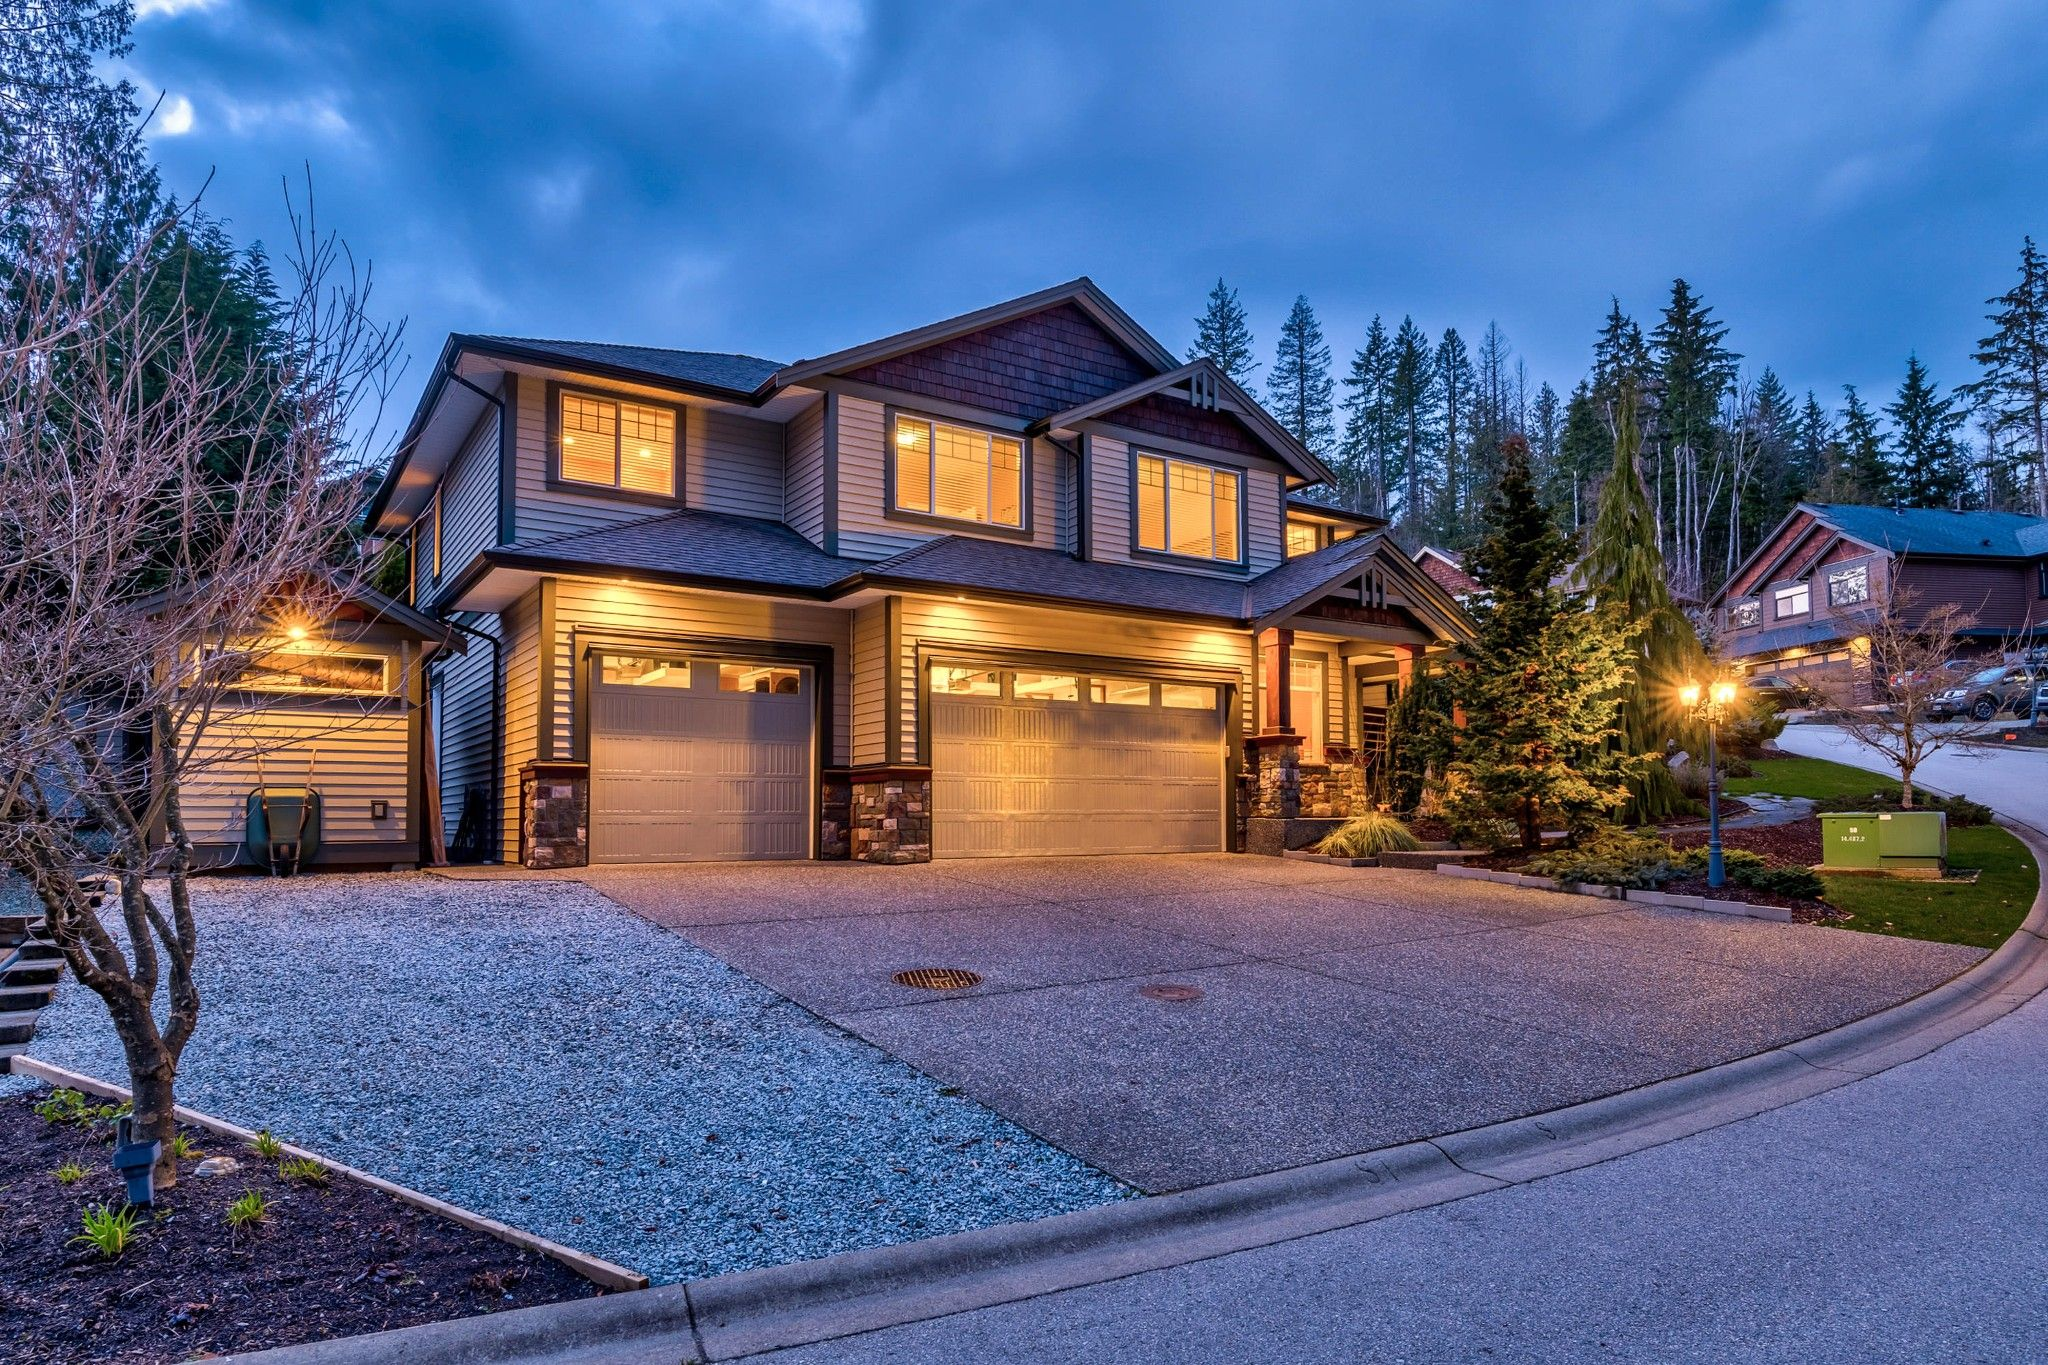 Photo 2: Photos: 16 13210 SHOESMITH CRESCENT in Maple Ridge: Silver Valley House for sale : MLS®# R2448043